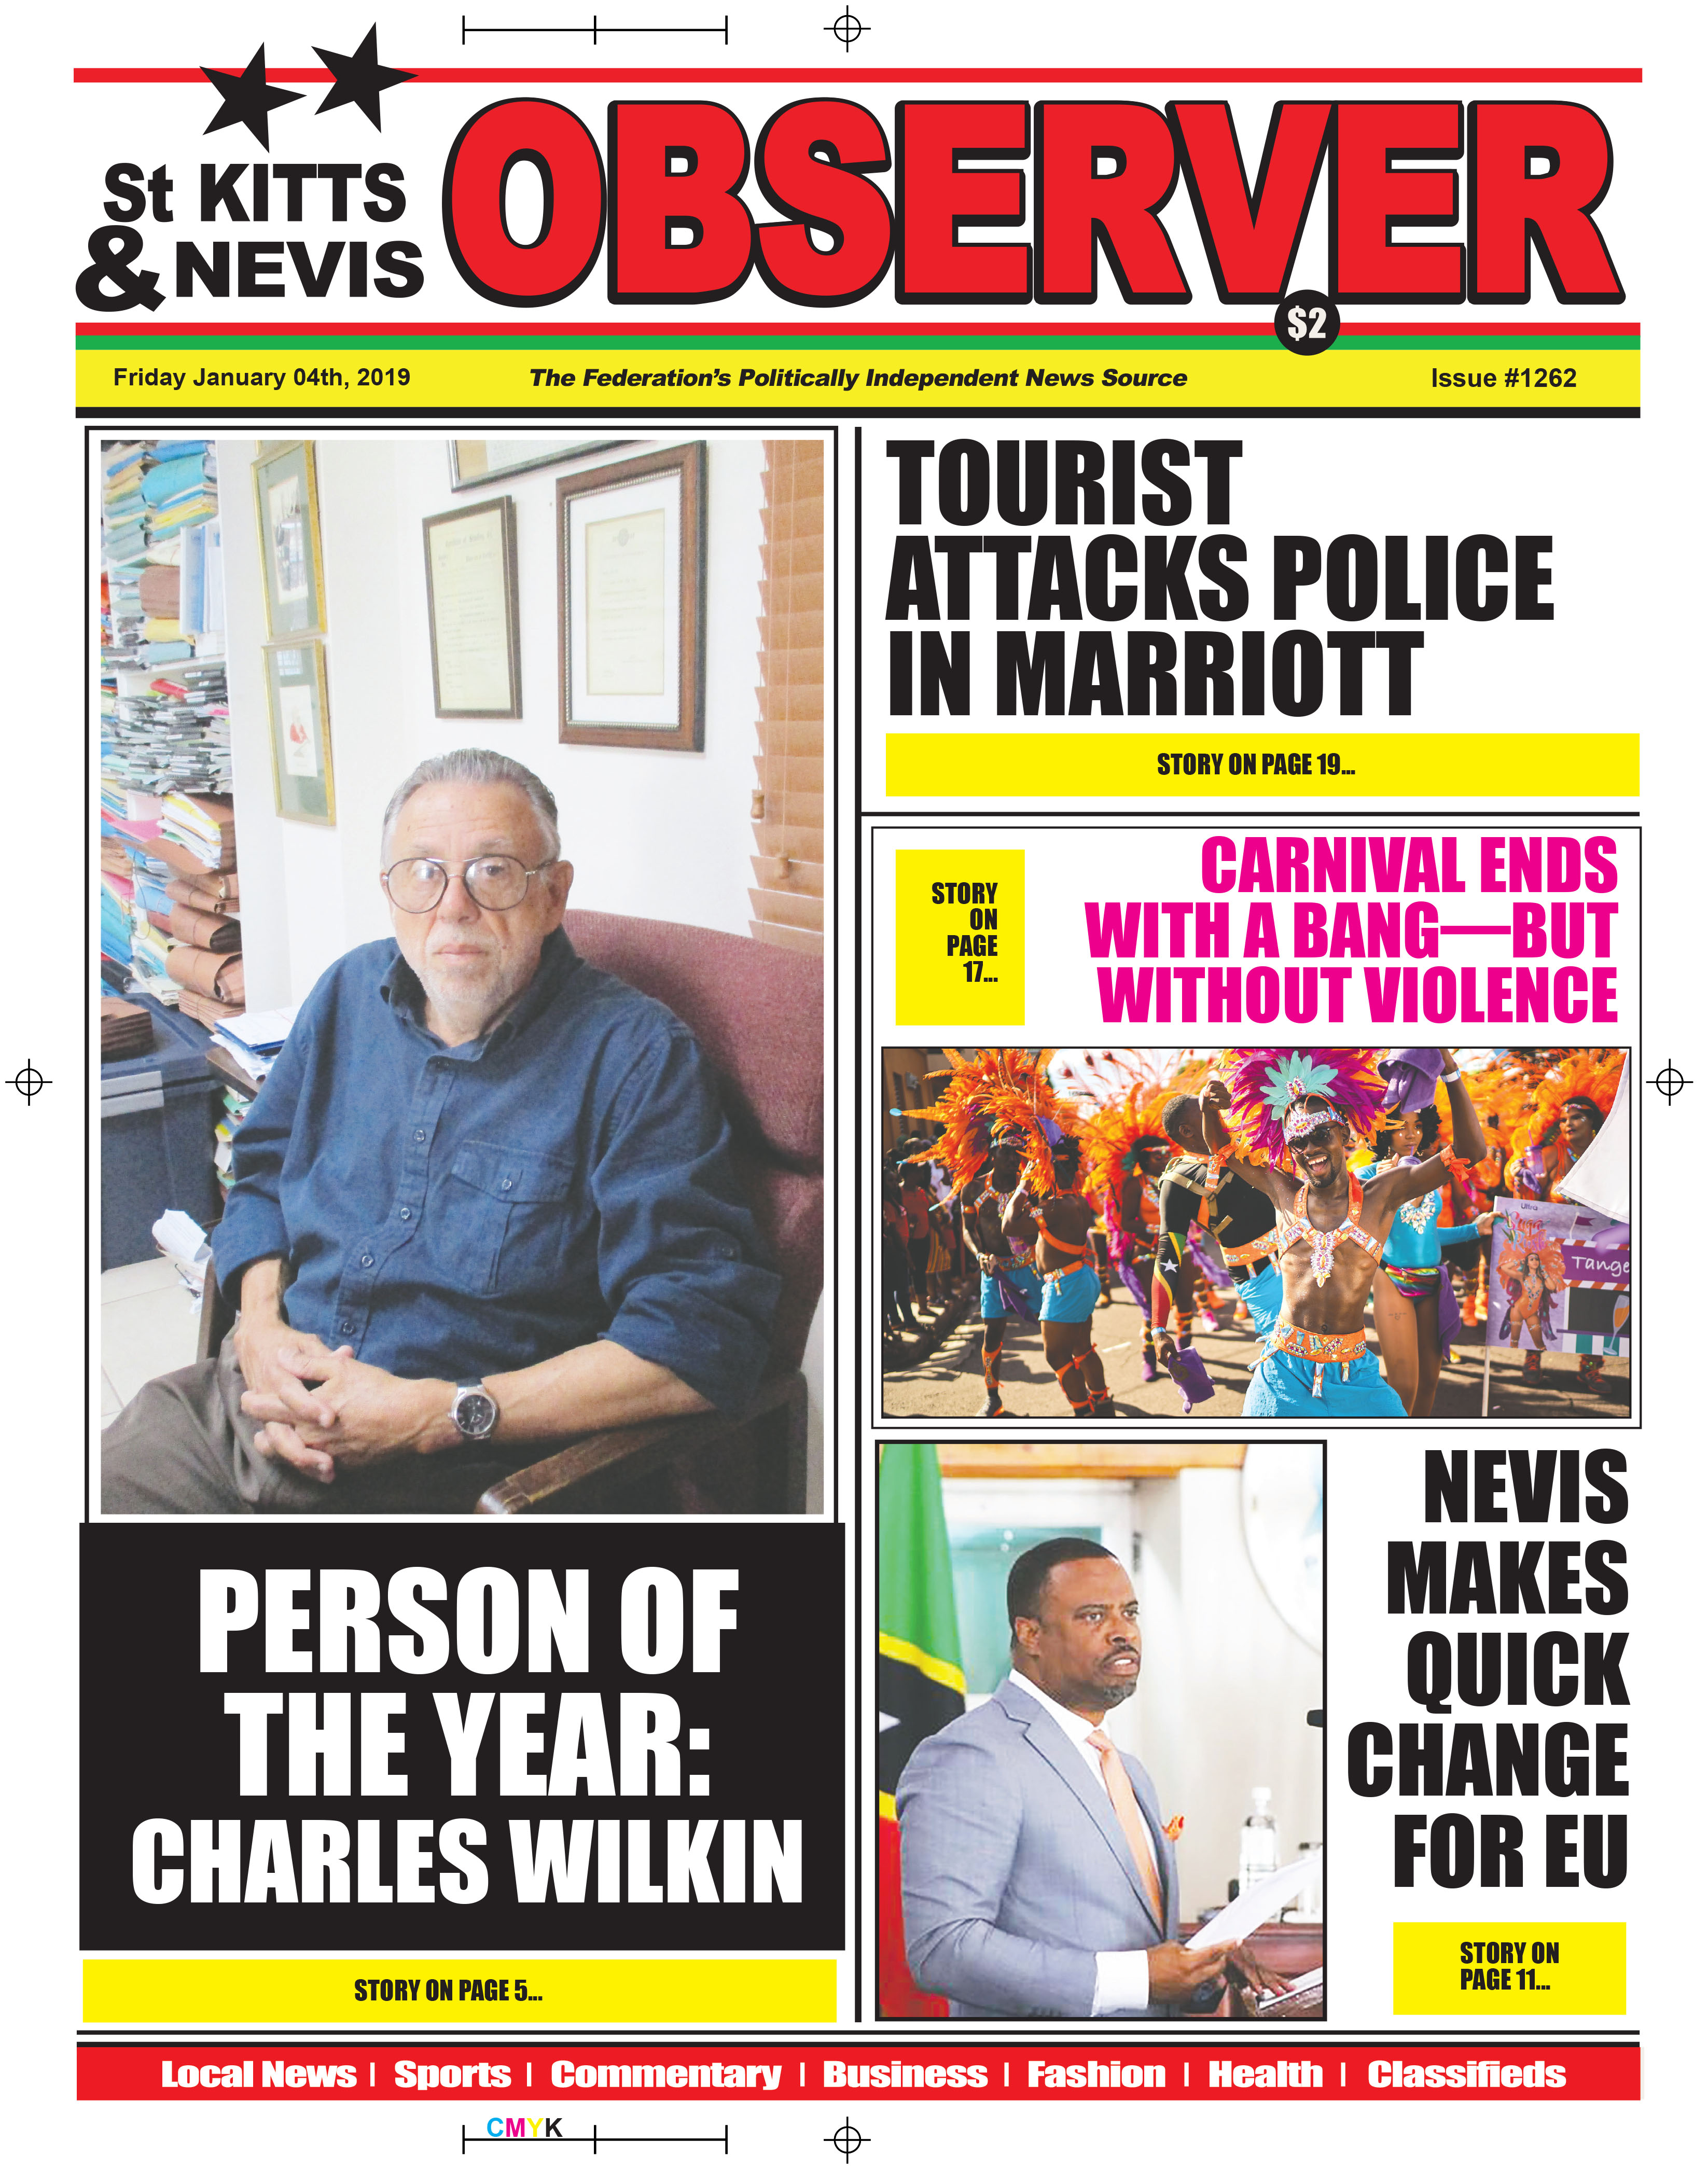 Newspaper Cover for 04th January 2019  The St Kitts Nevis Observer